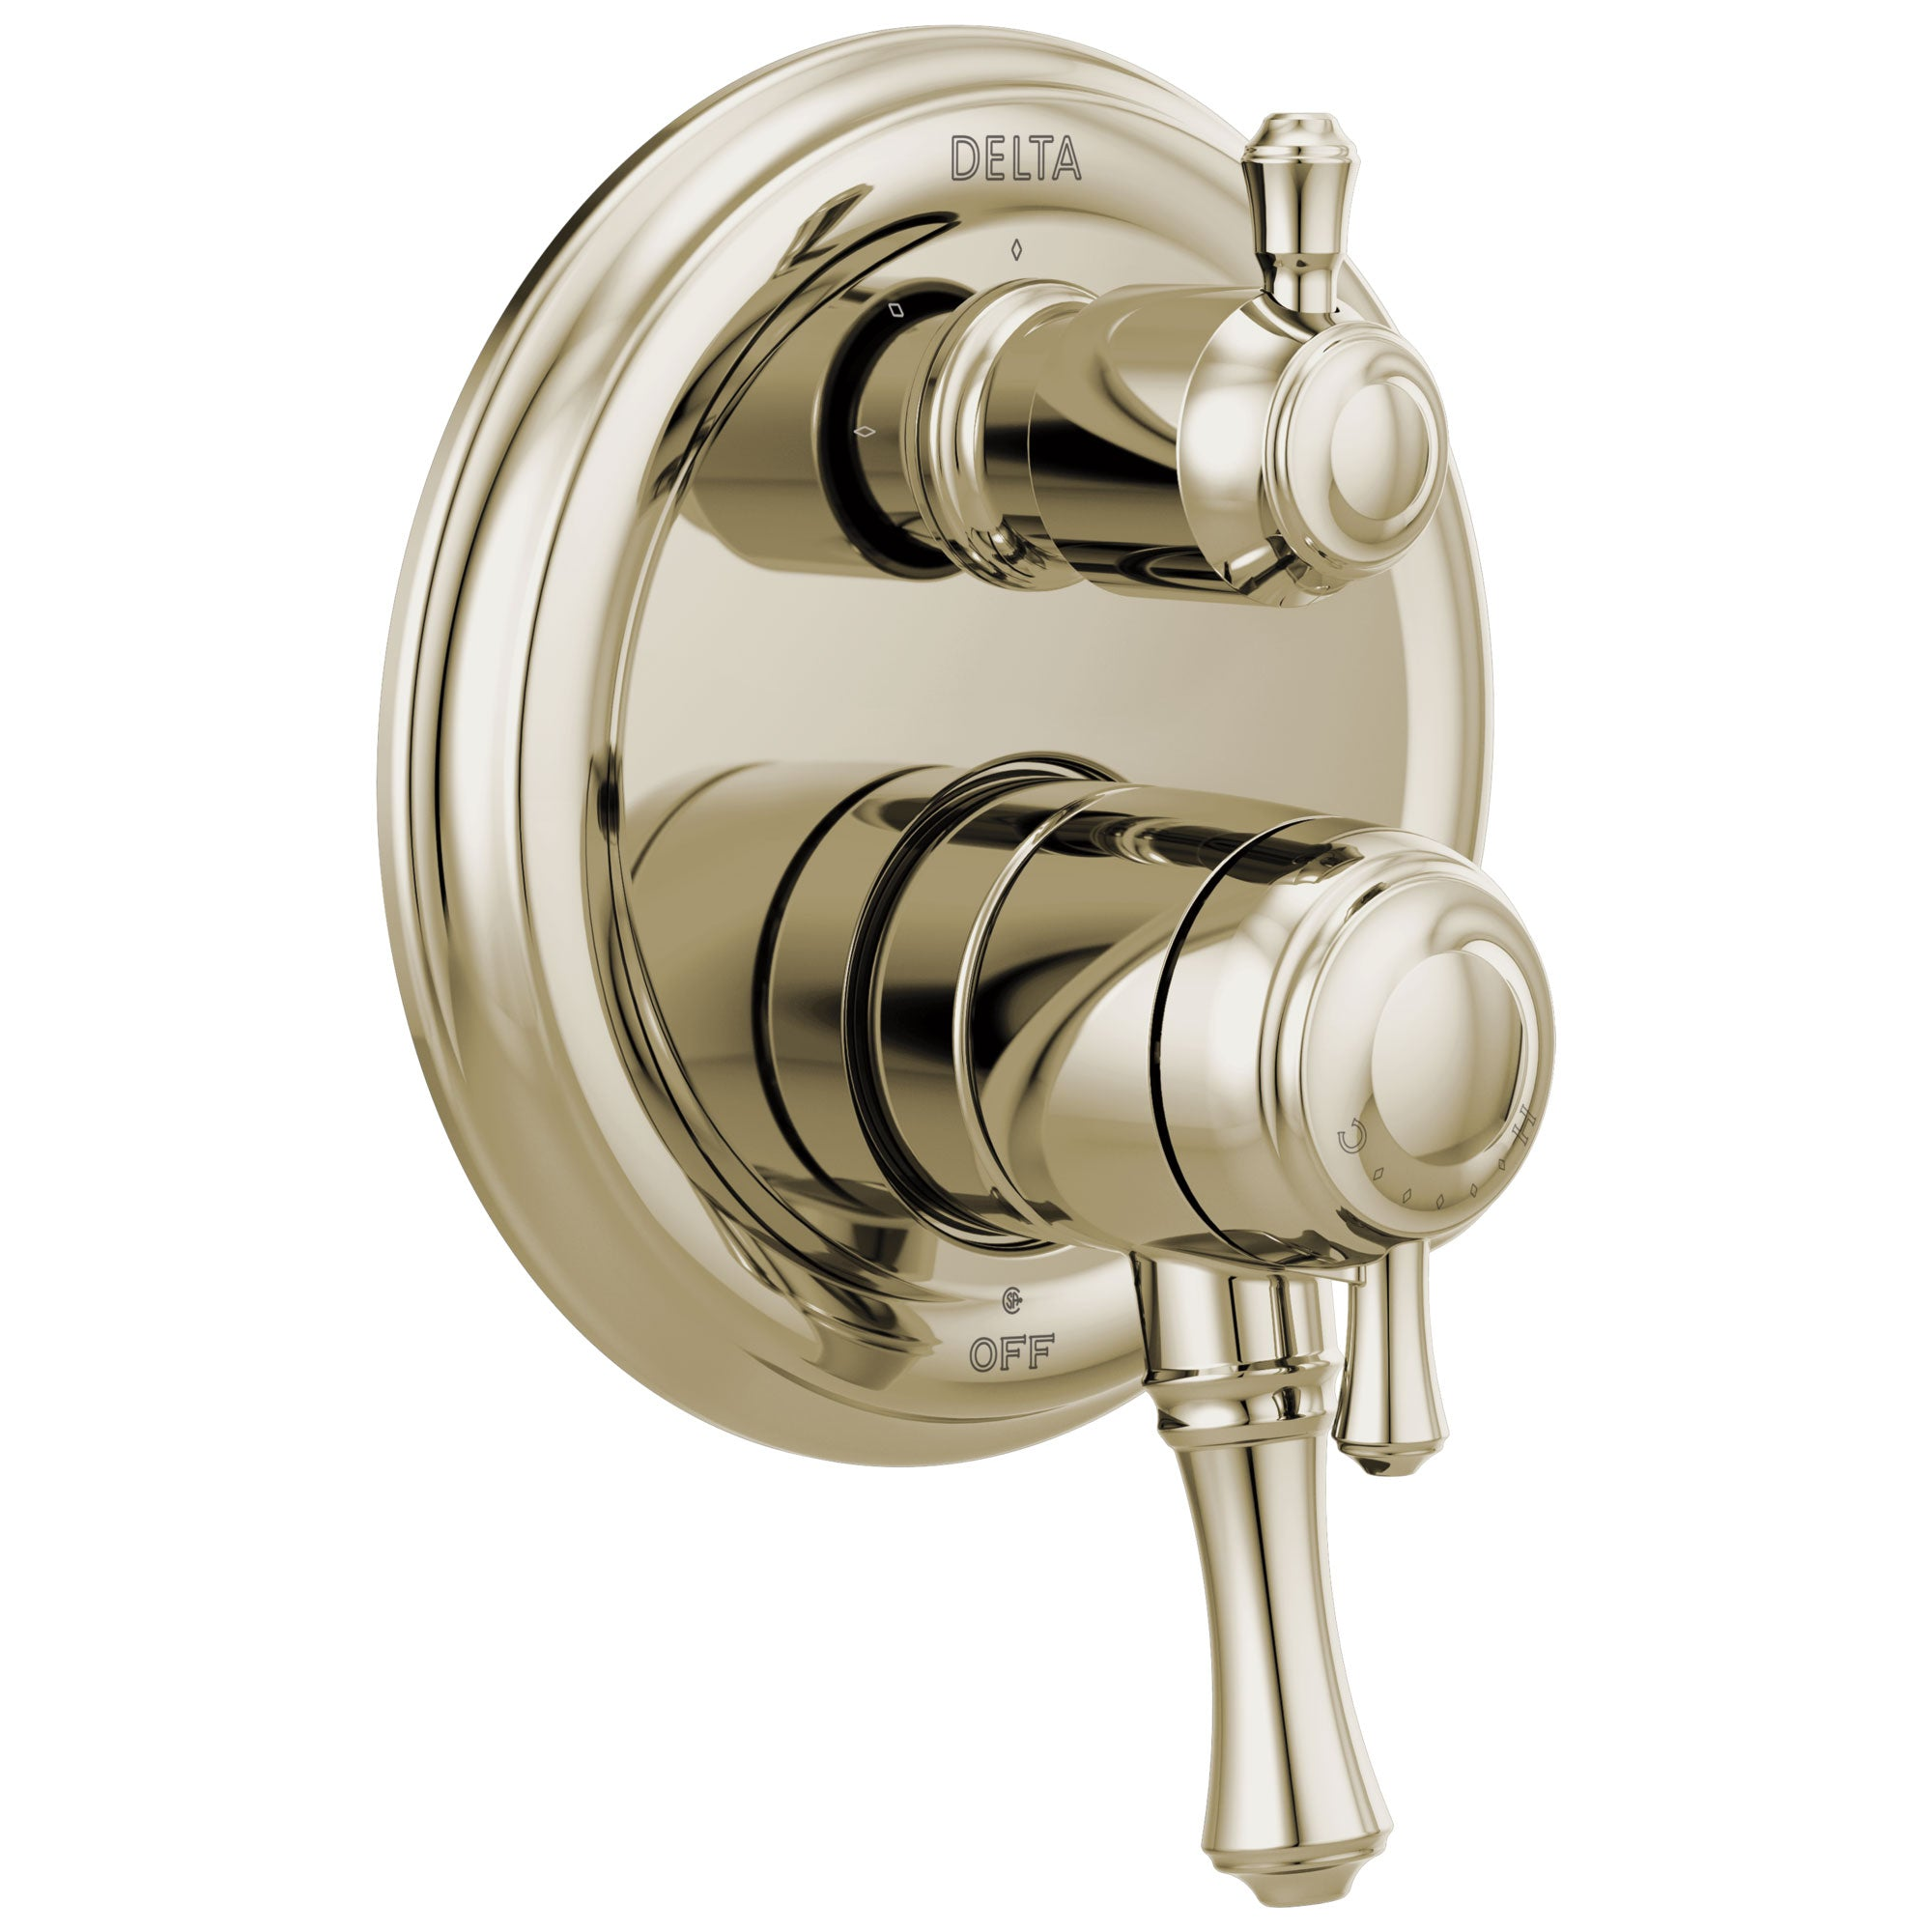 Delta Cassidy Polished Nickel Finish Traditional 17 Series Shower System Control with 3-Function Integrated Diverter Includes Valve and Handles D3138V